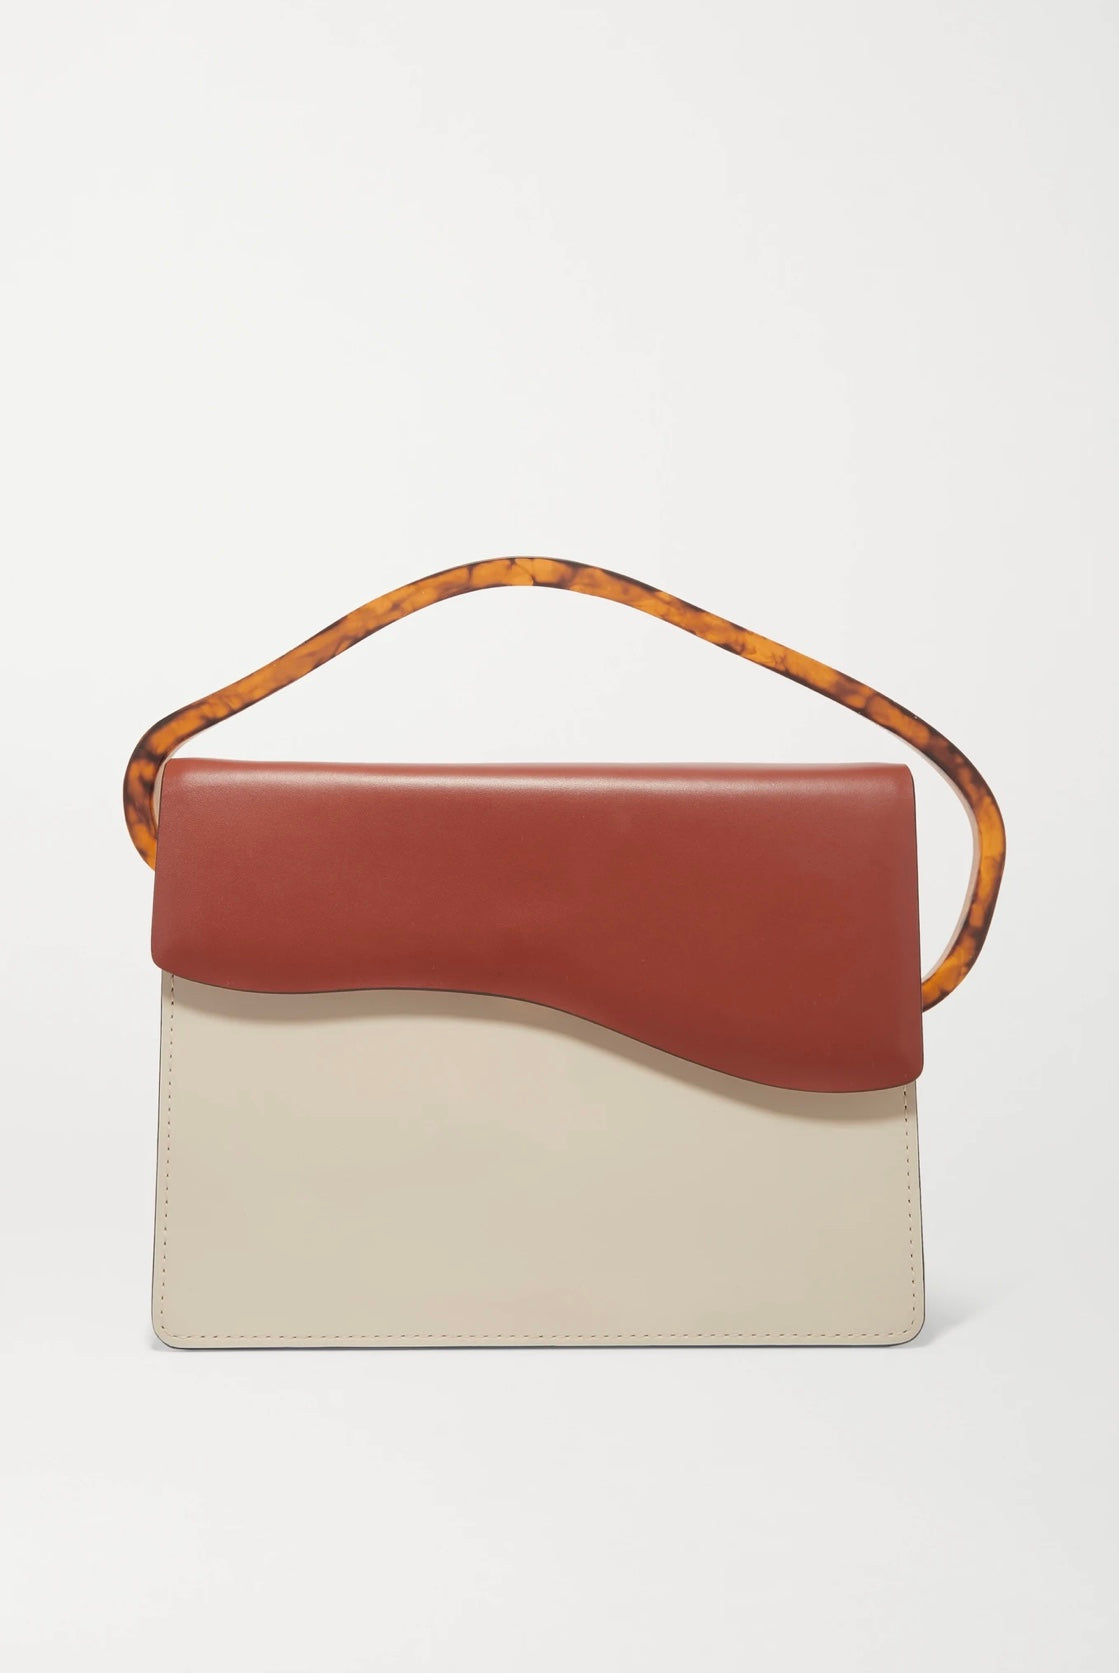 6 NATURAE SACRA Aiges two-tone leather and resin tote